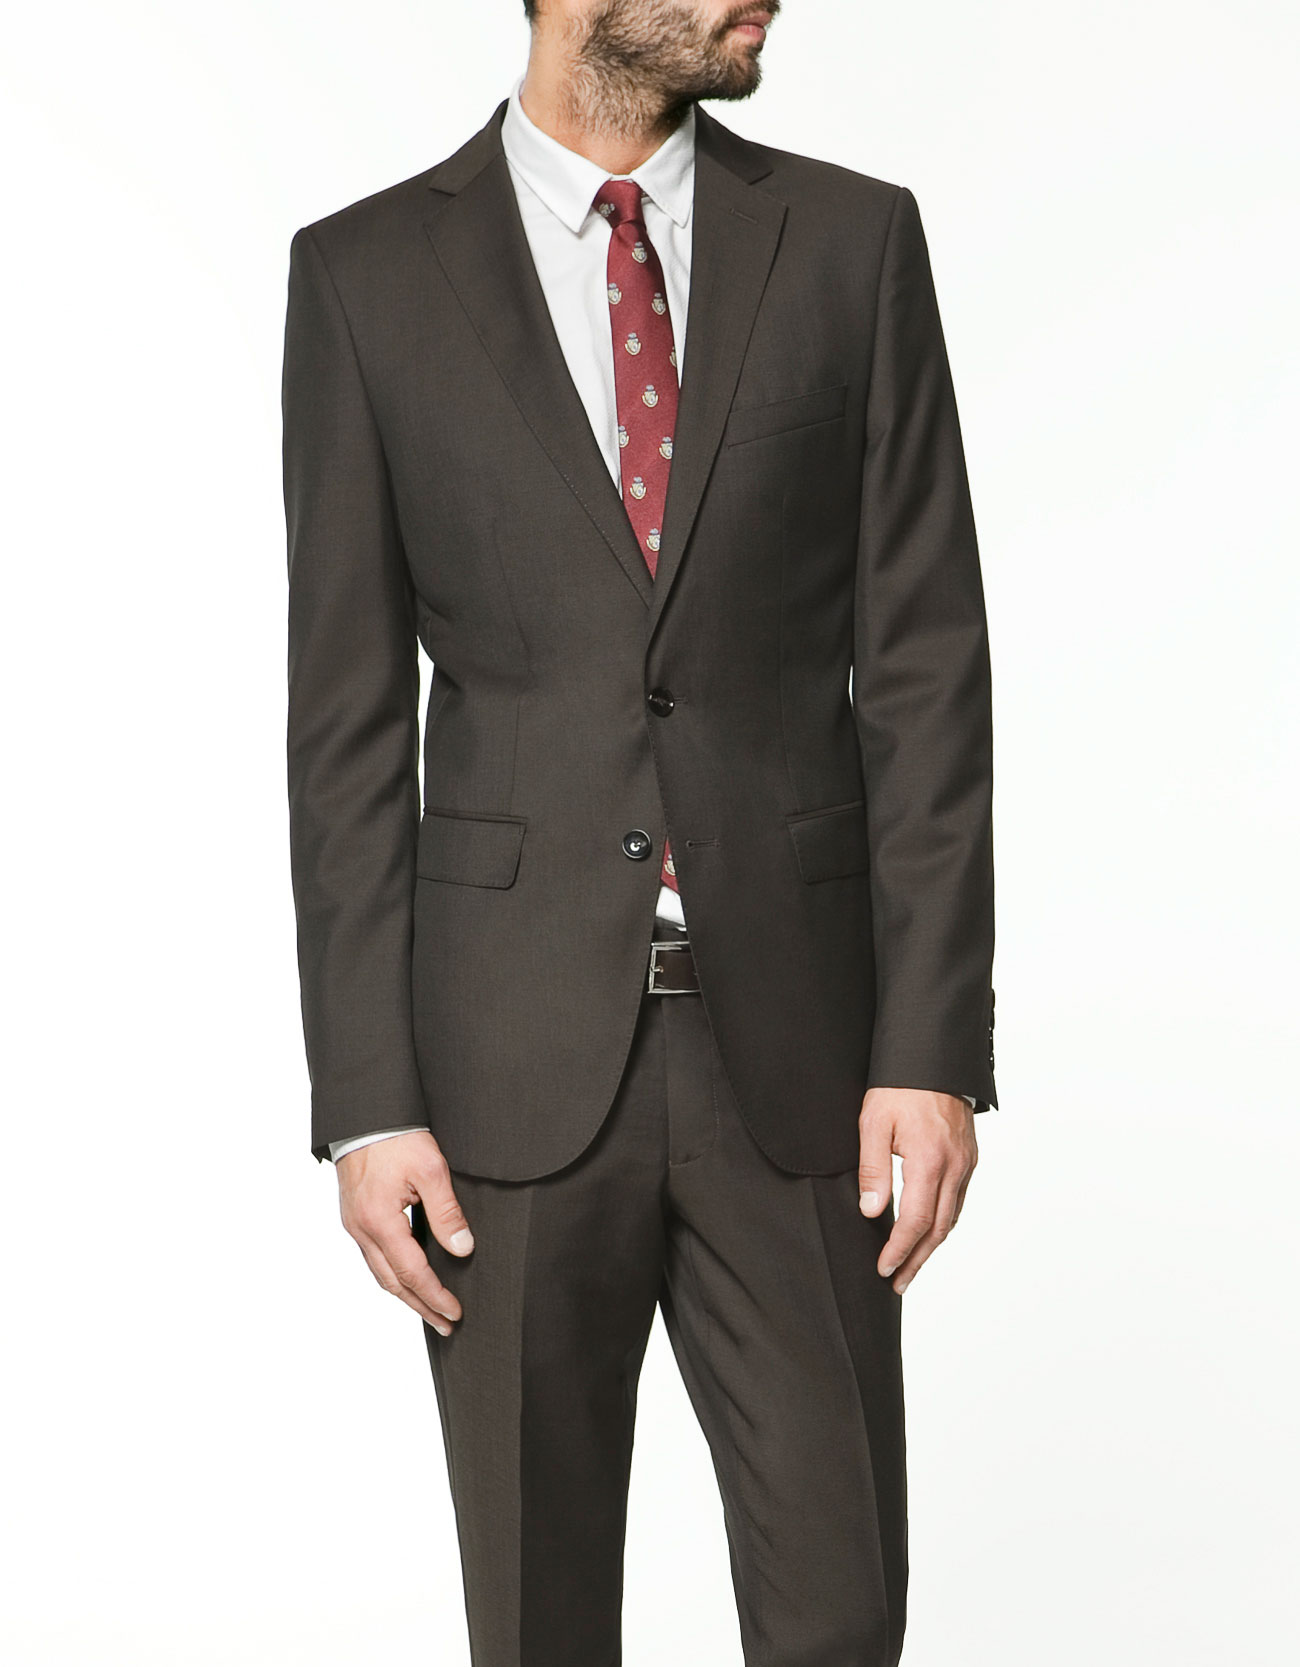 Zara Brown Formal Blazer In Brown For Men | Lyst